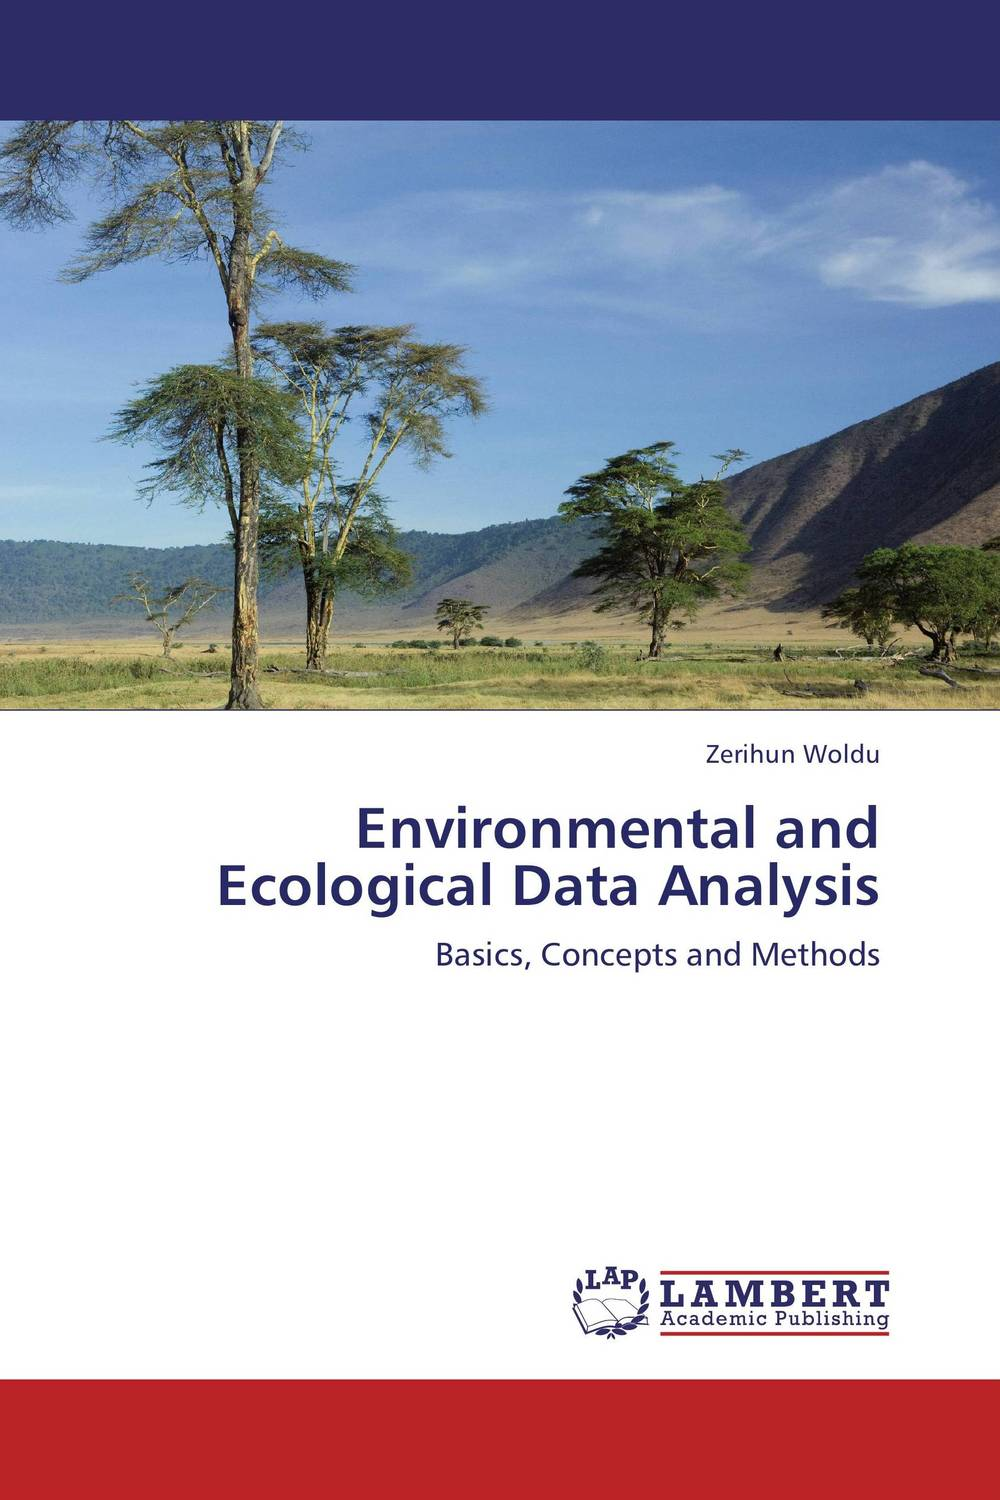 Environmental and Ecological Data Analysis separation and radiocarbon analysis of environmental chloroacetates